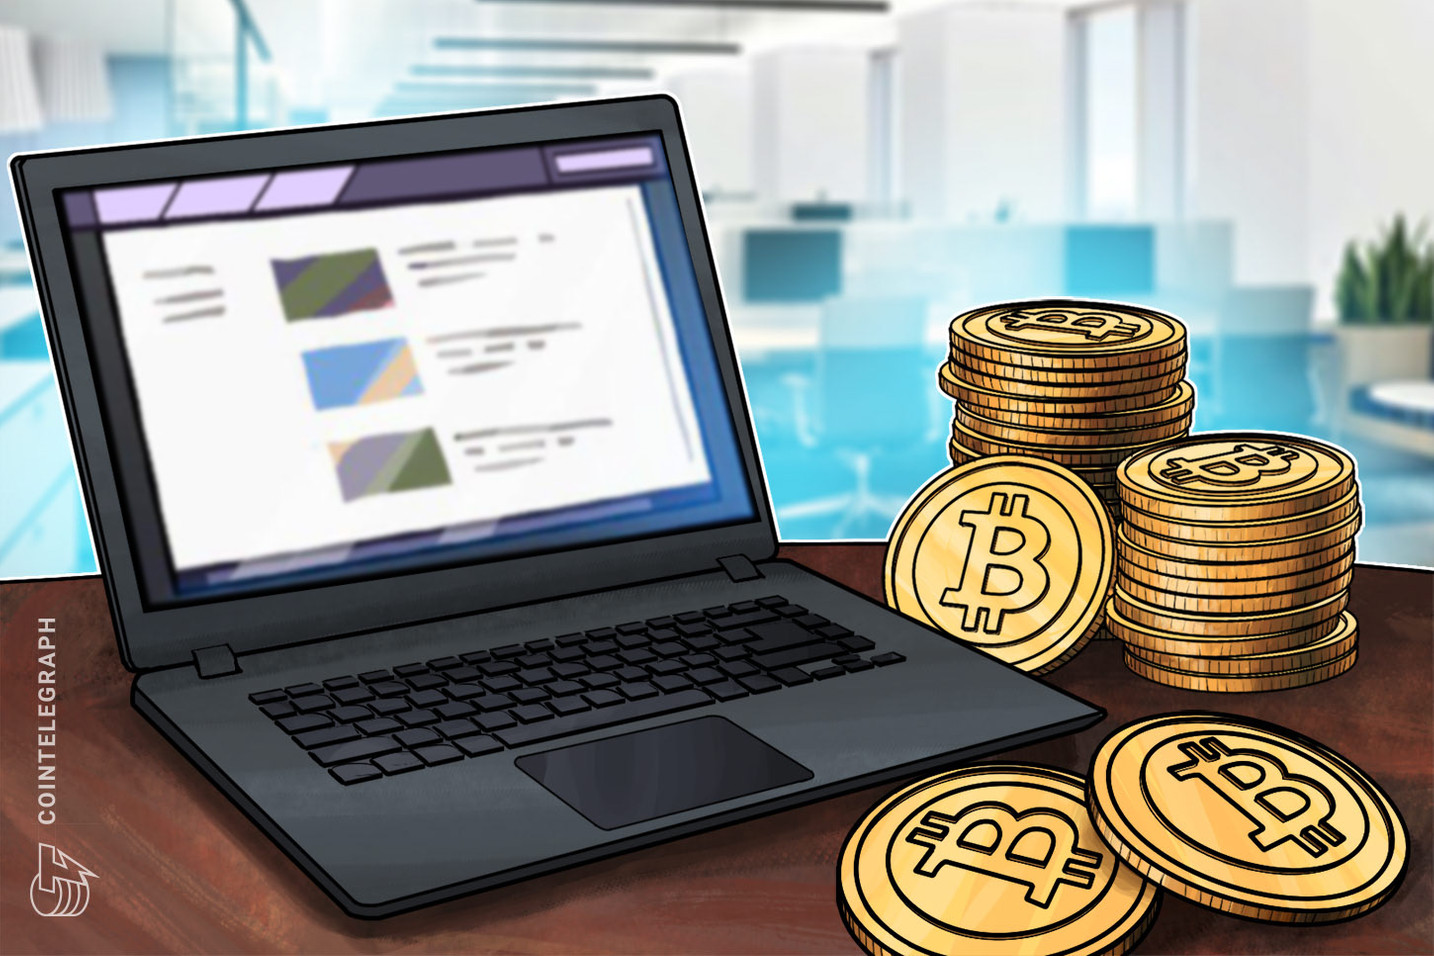 """Reddit reminds of the former """"Bitcoin tap website"""": 19,700 BTC given away for free"""